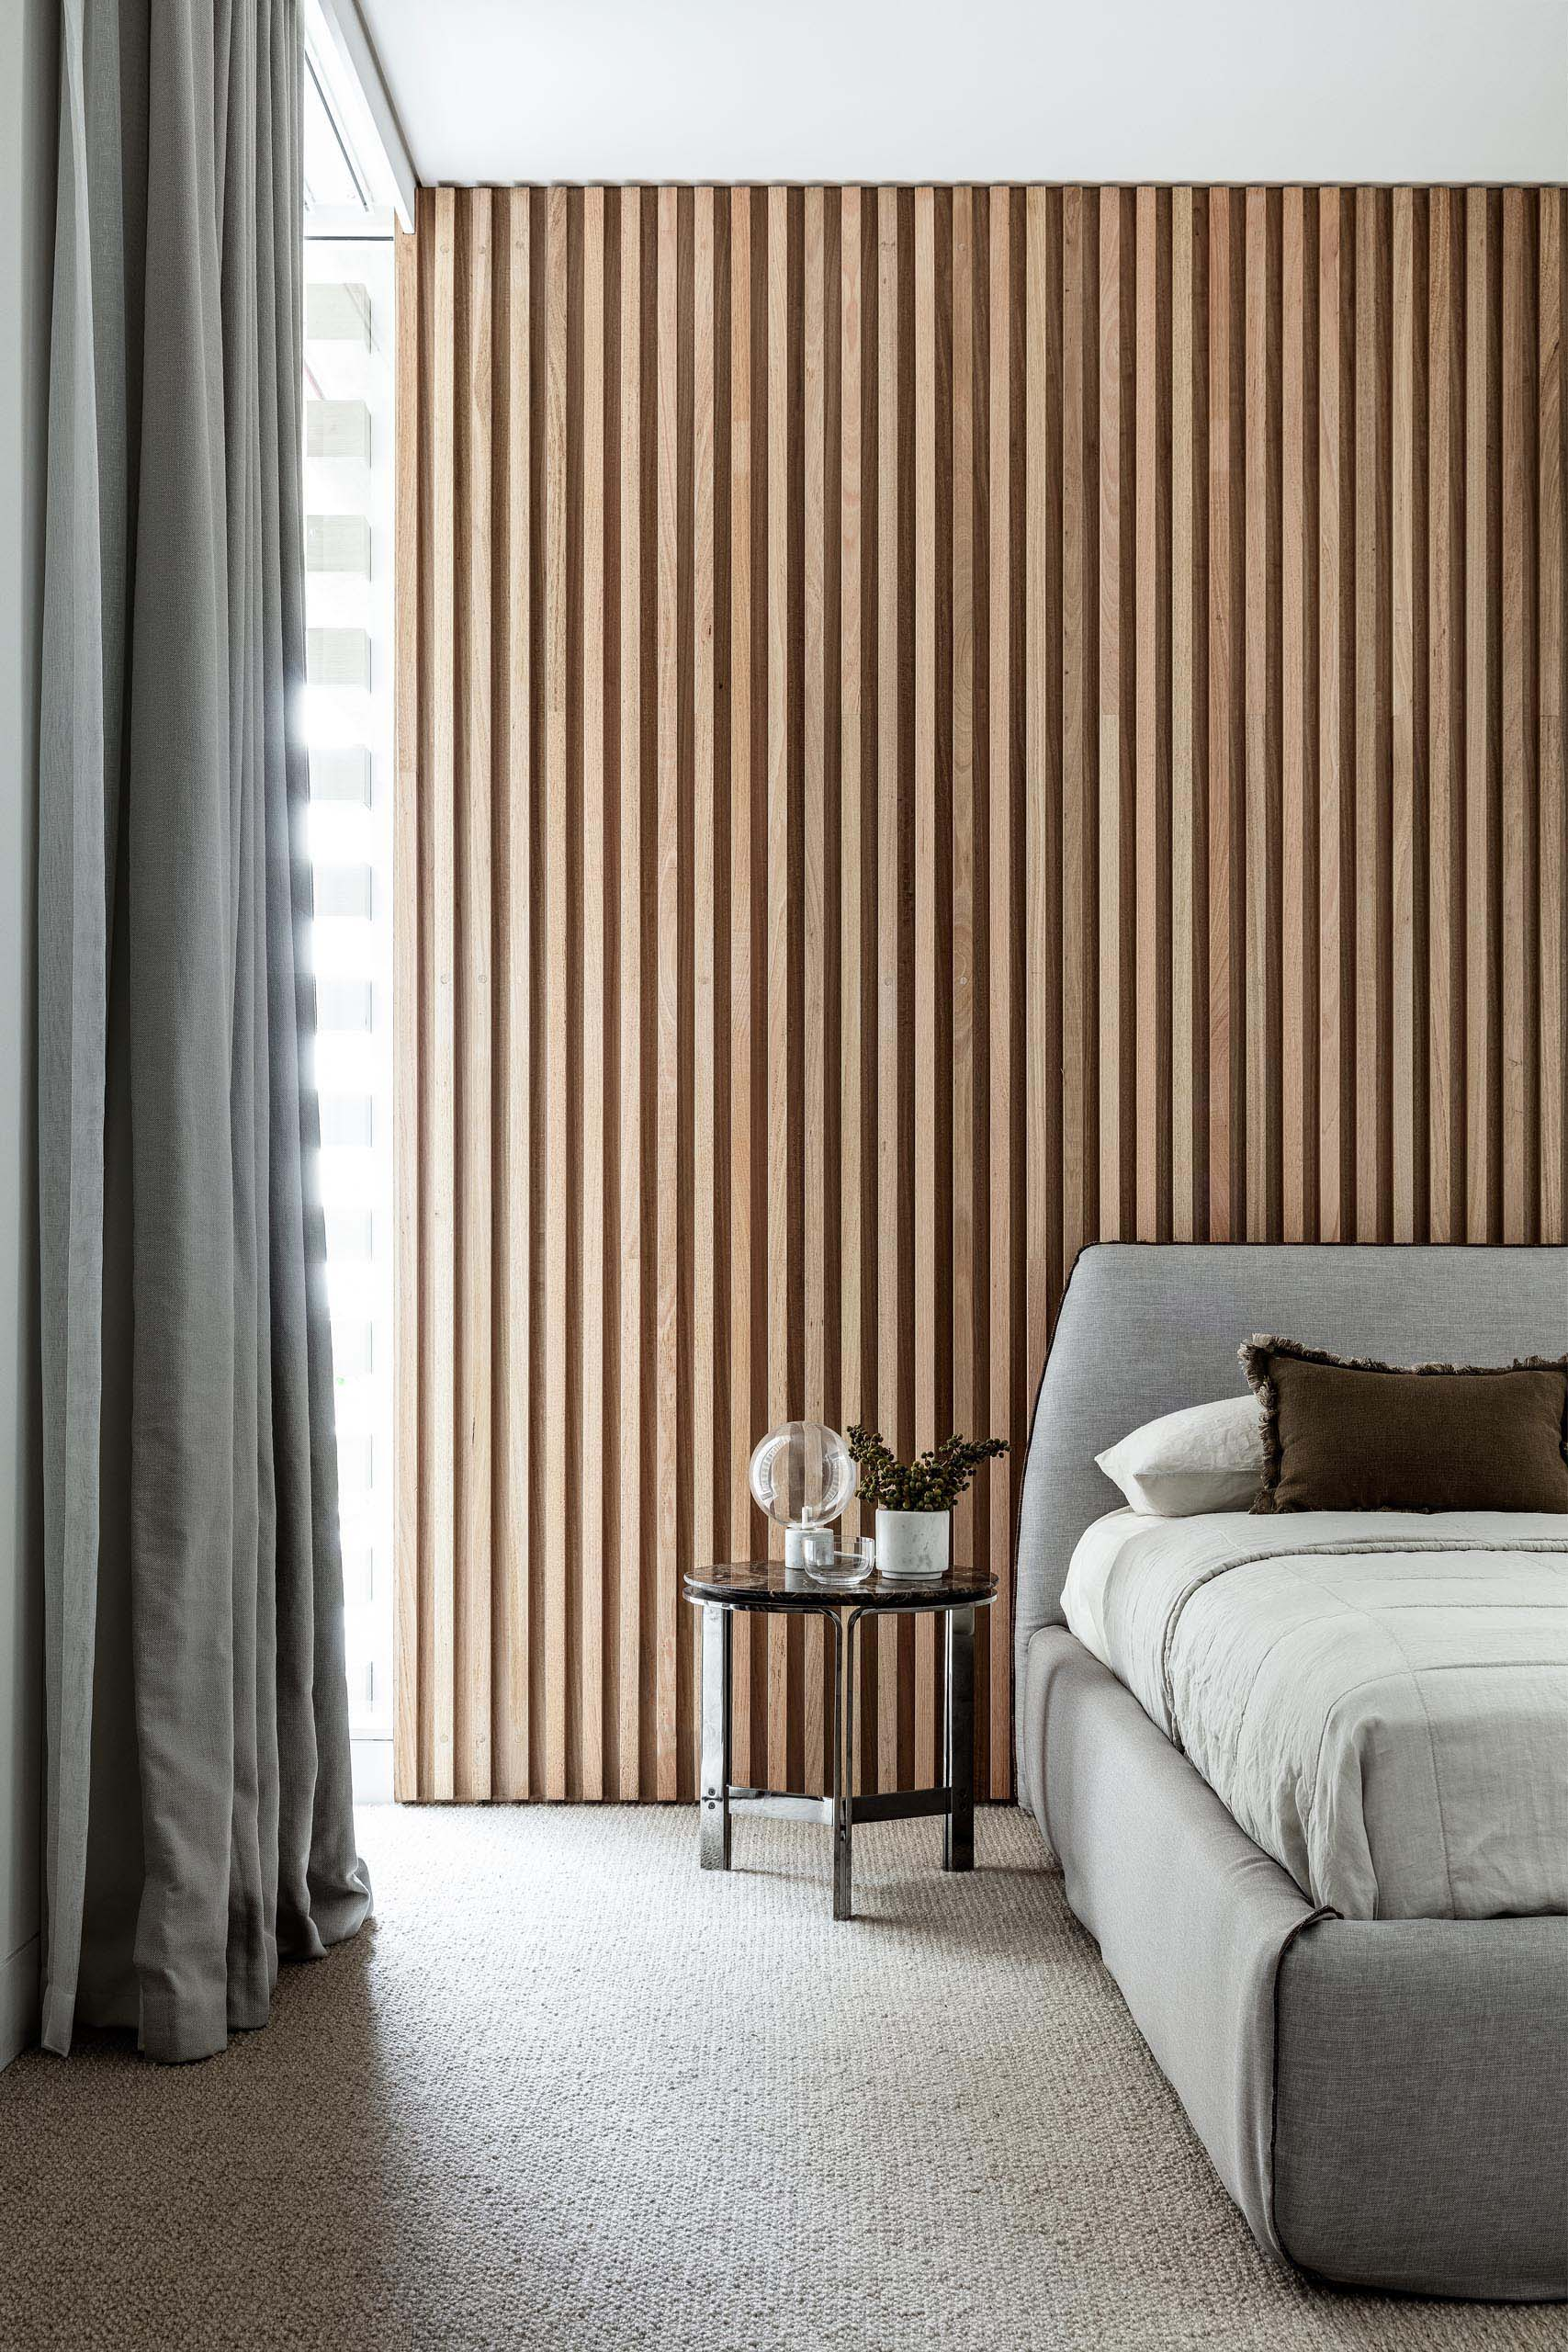 In this modern bedroom, a wood slat wall has been used to create an accent wall behind the grey upholstered bed.